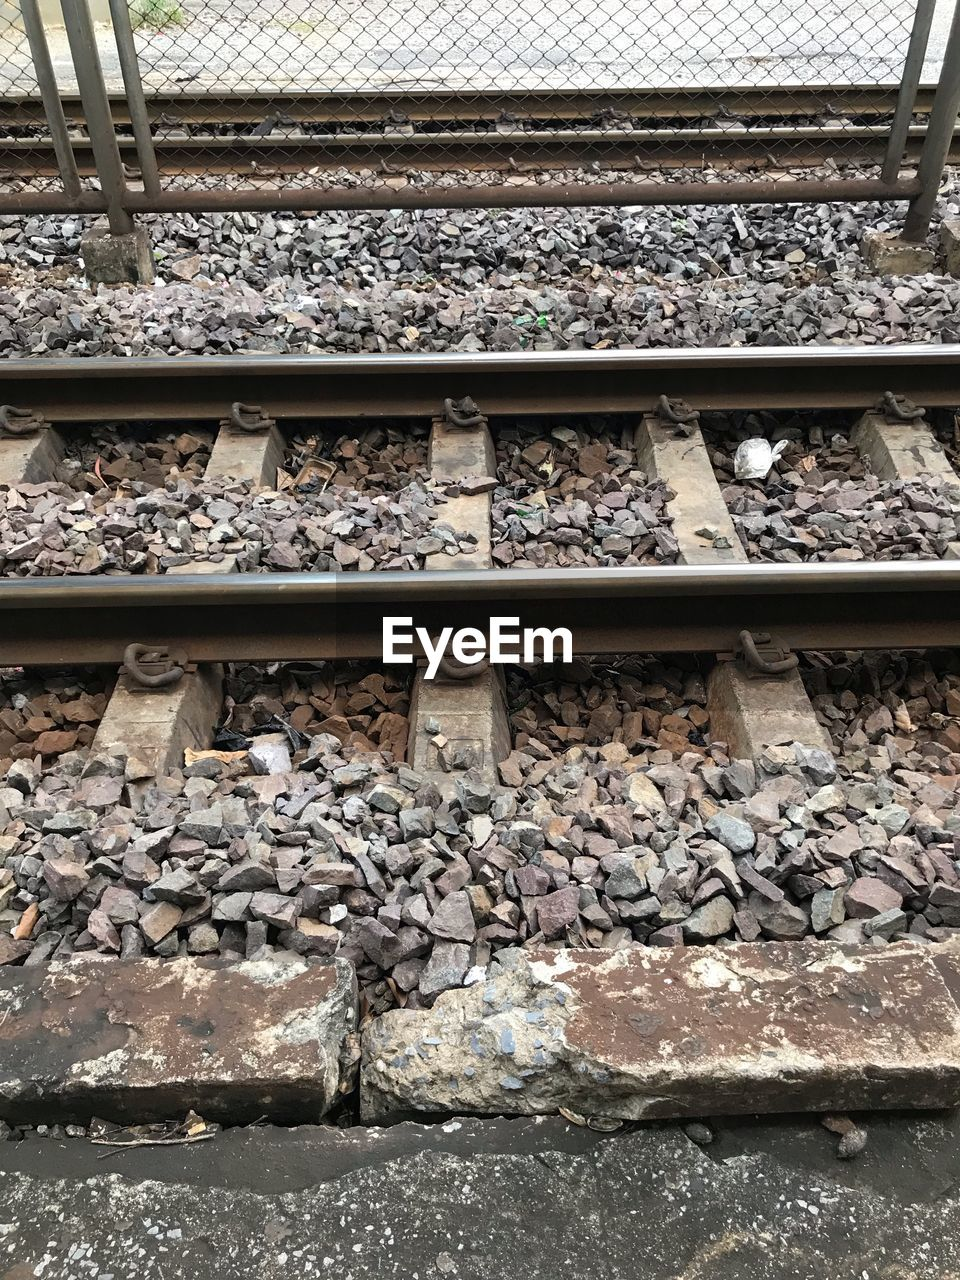 VIEW OF RAILROAD TRACKS AND TRACK